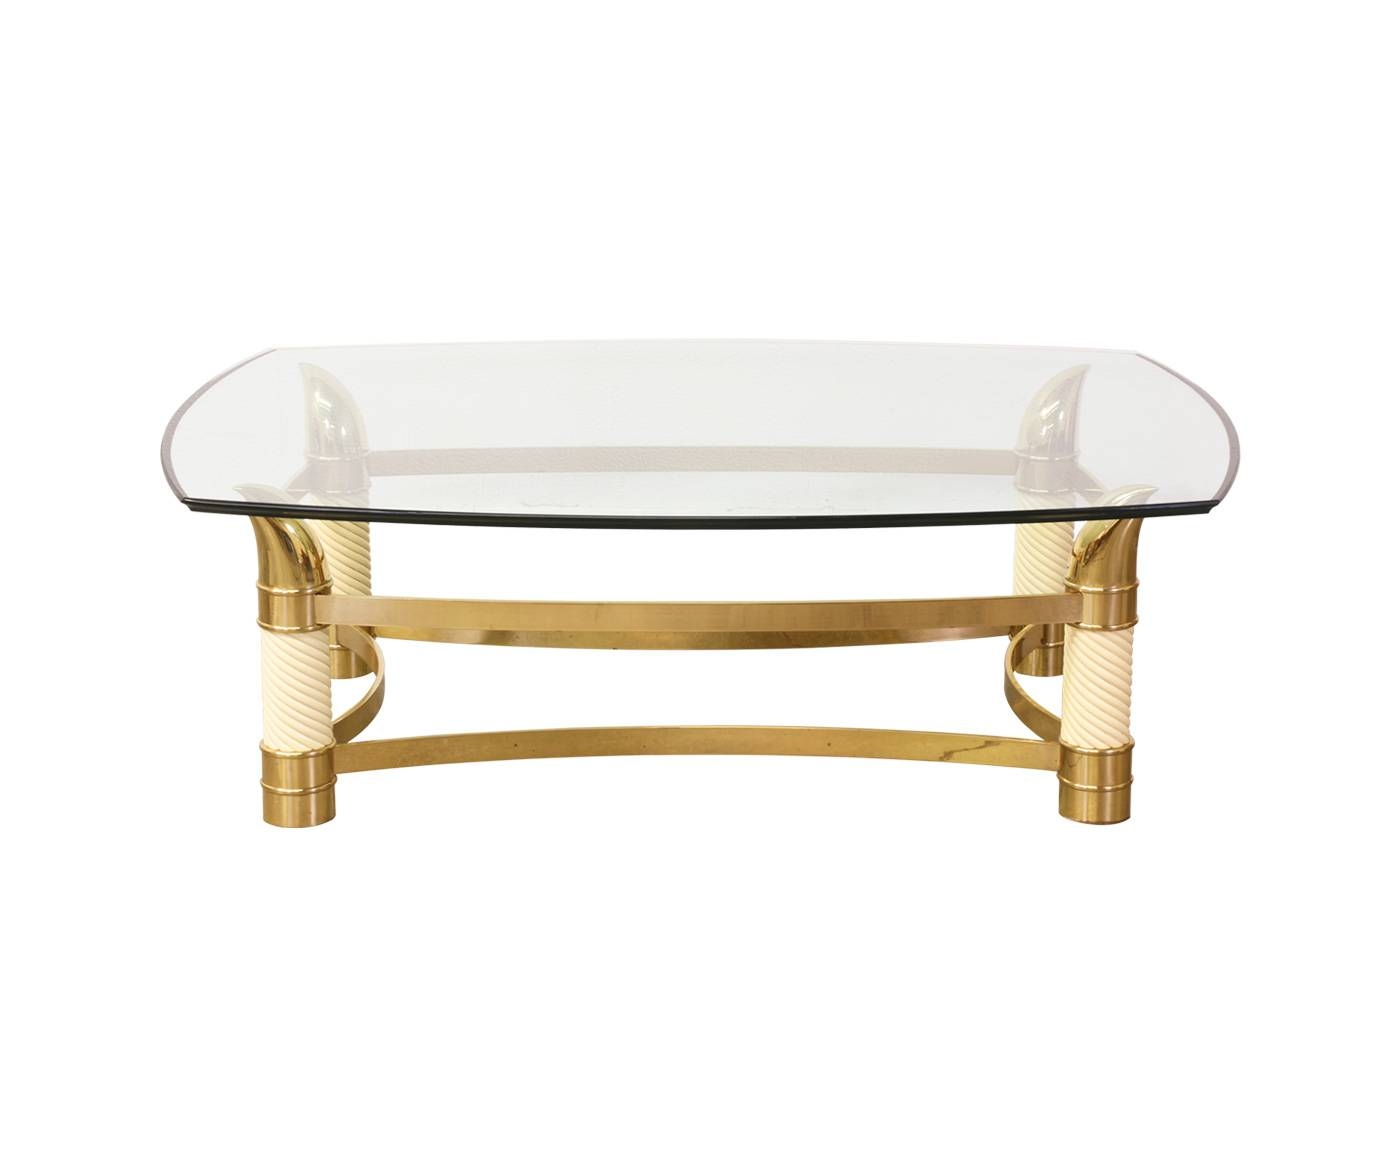 Vintage Italian Brass Horn Coffee Table W/ Glass Top | Danish within Retro Glass Top Coffee Tables (Image 28 of 30)